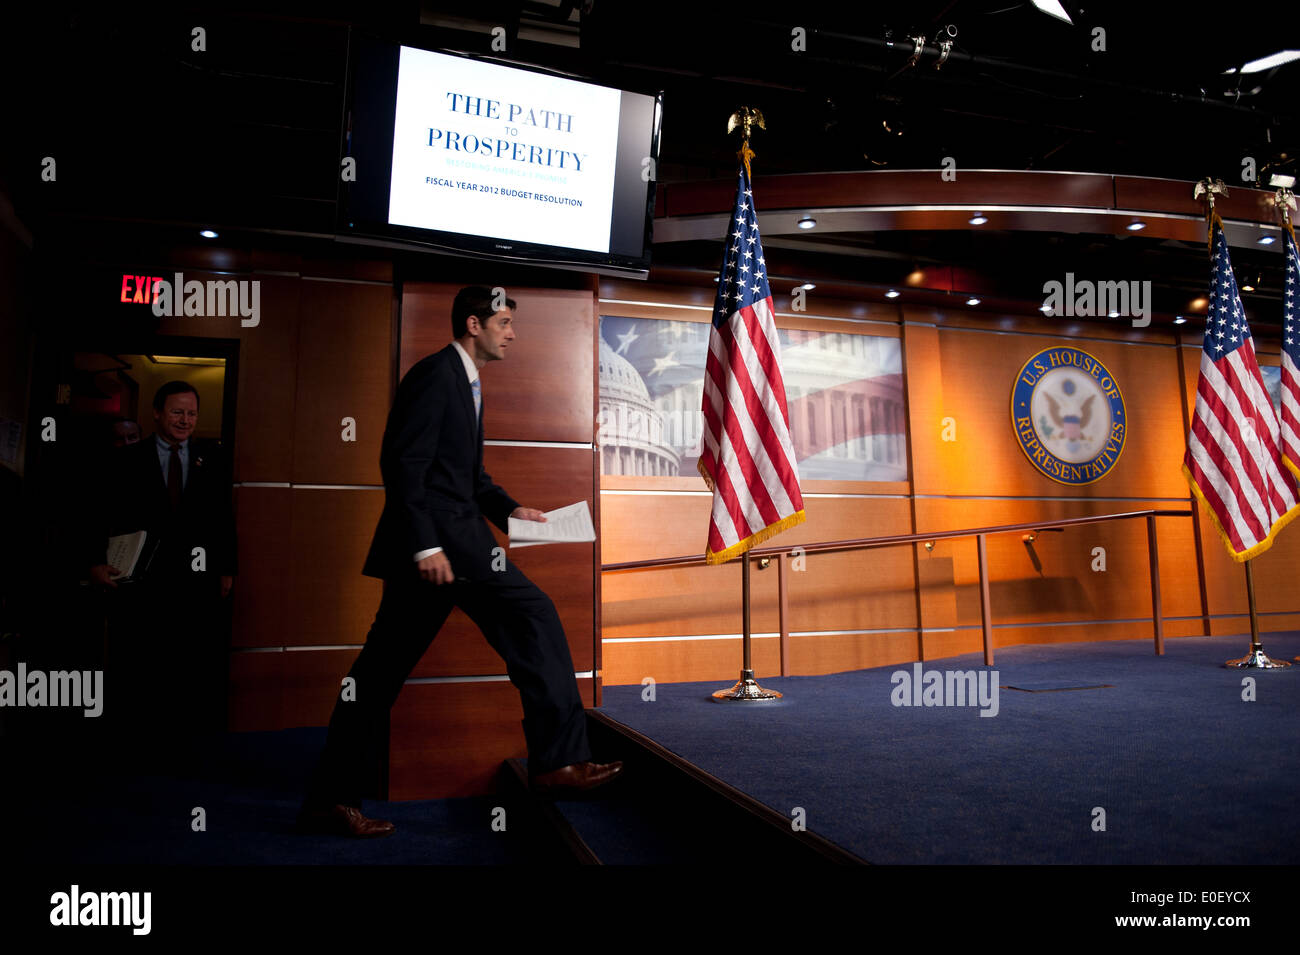 US House Budget Chairman Rep. Paul Ryan enters a press conference about the federal budget stalemate April 5, 2011 in Washington, DC. - Stock Image